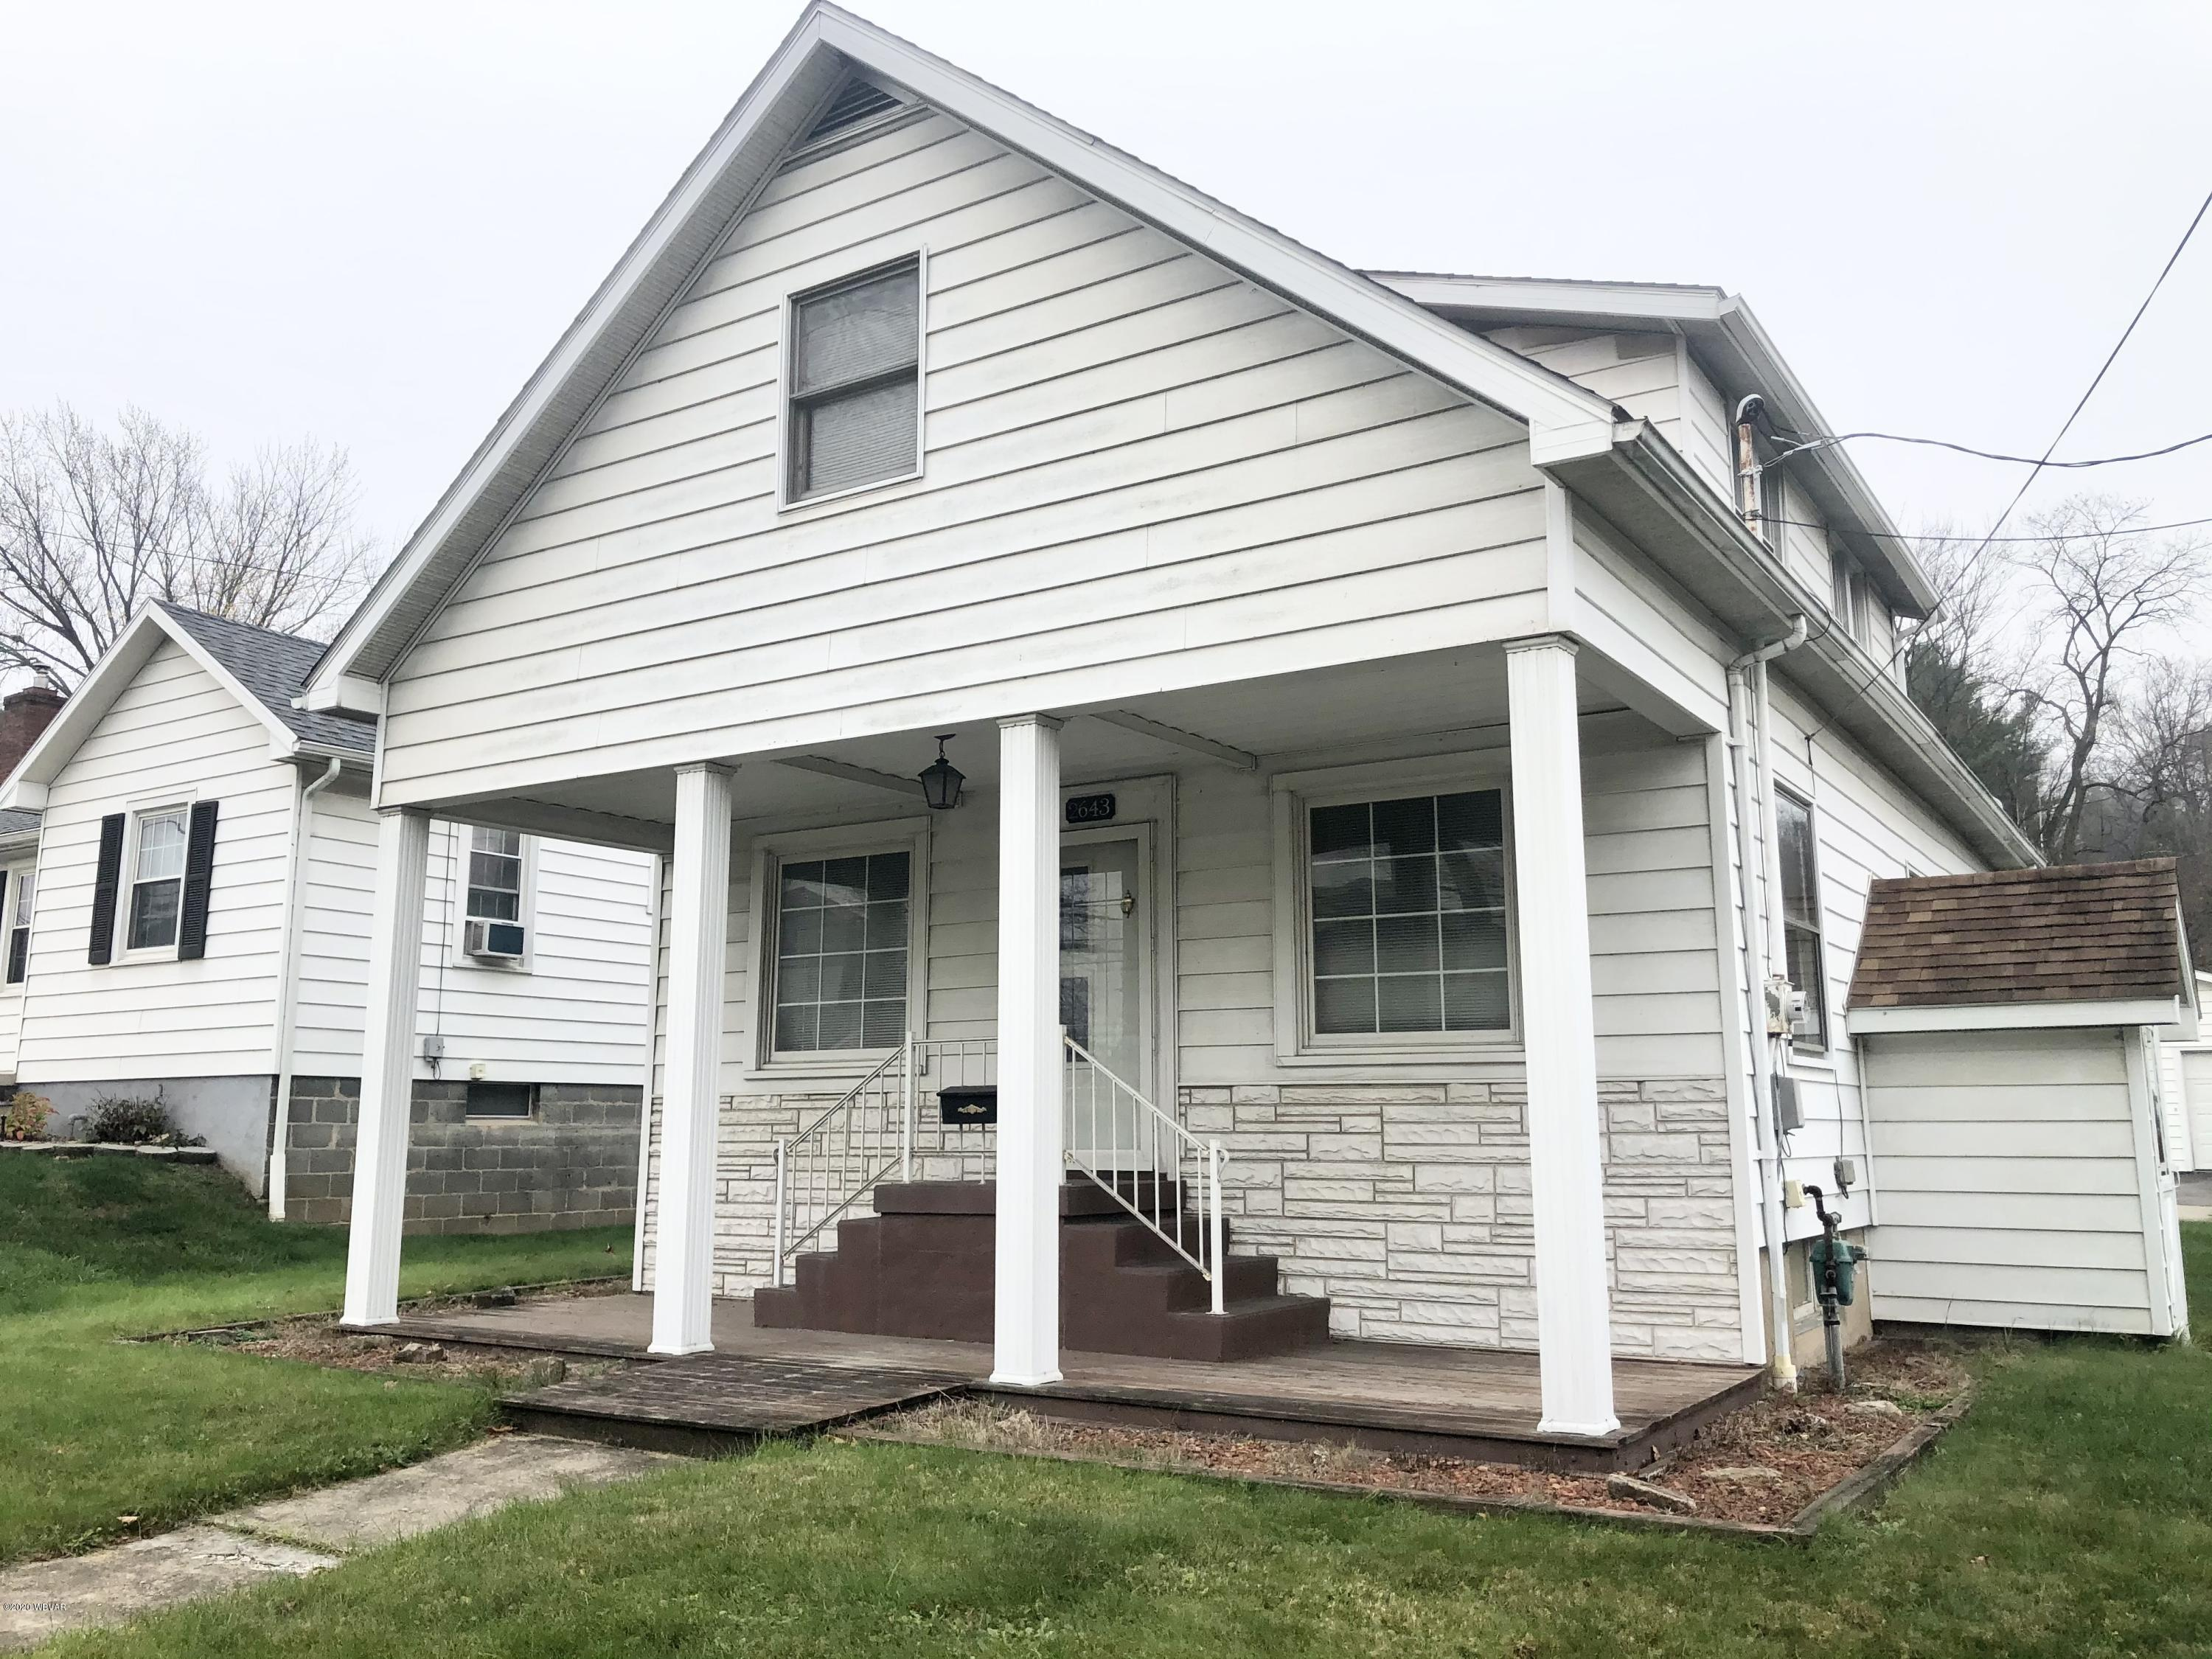 2643 EUCLID AVENUE, S. Williamsport, PA 17702, 3 Bedrooms Bedrooms, ,1.5 BathroomsBathrooms,Residential,For sale,EUCLID,WB-91566